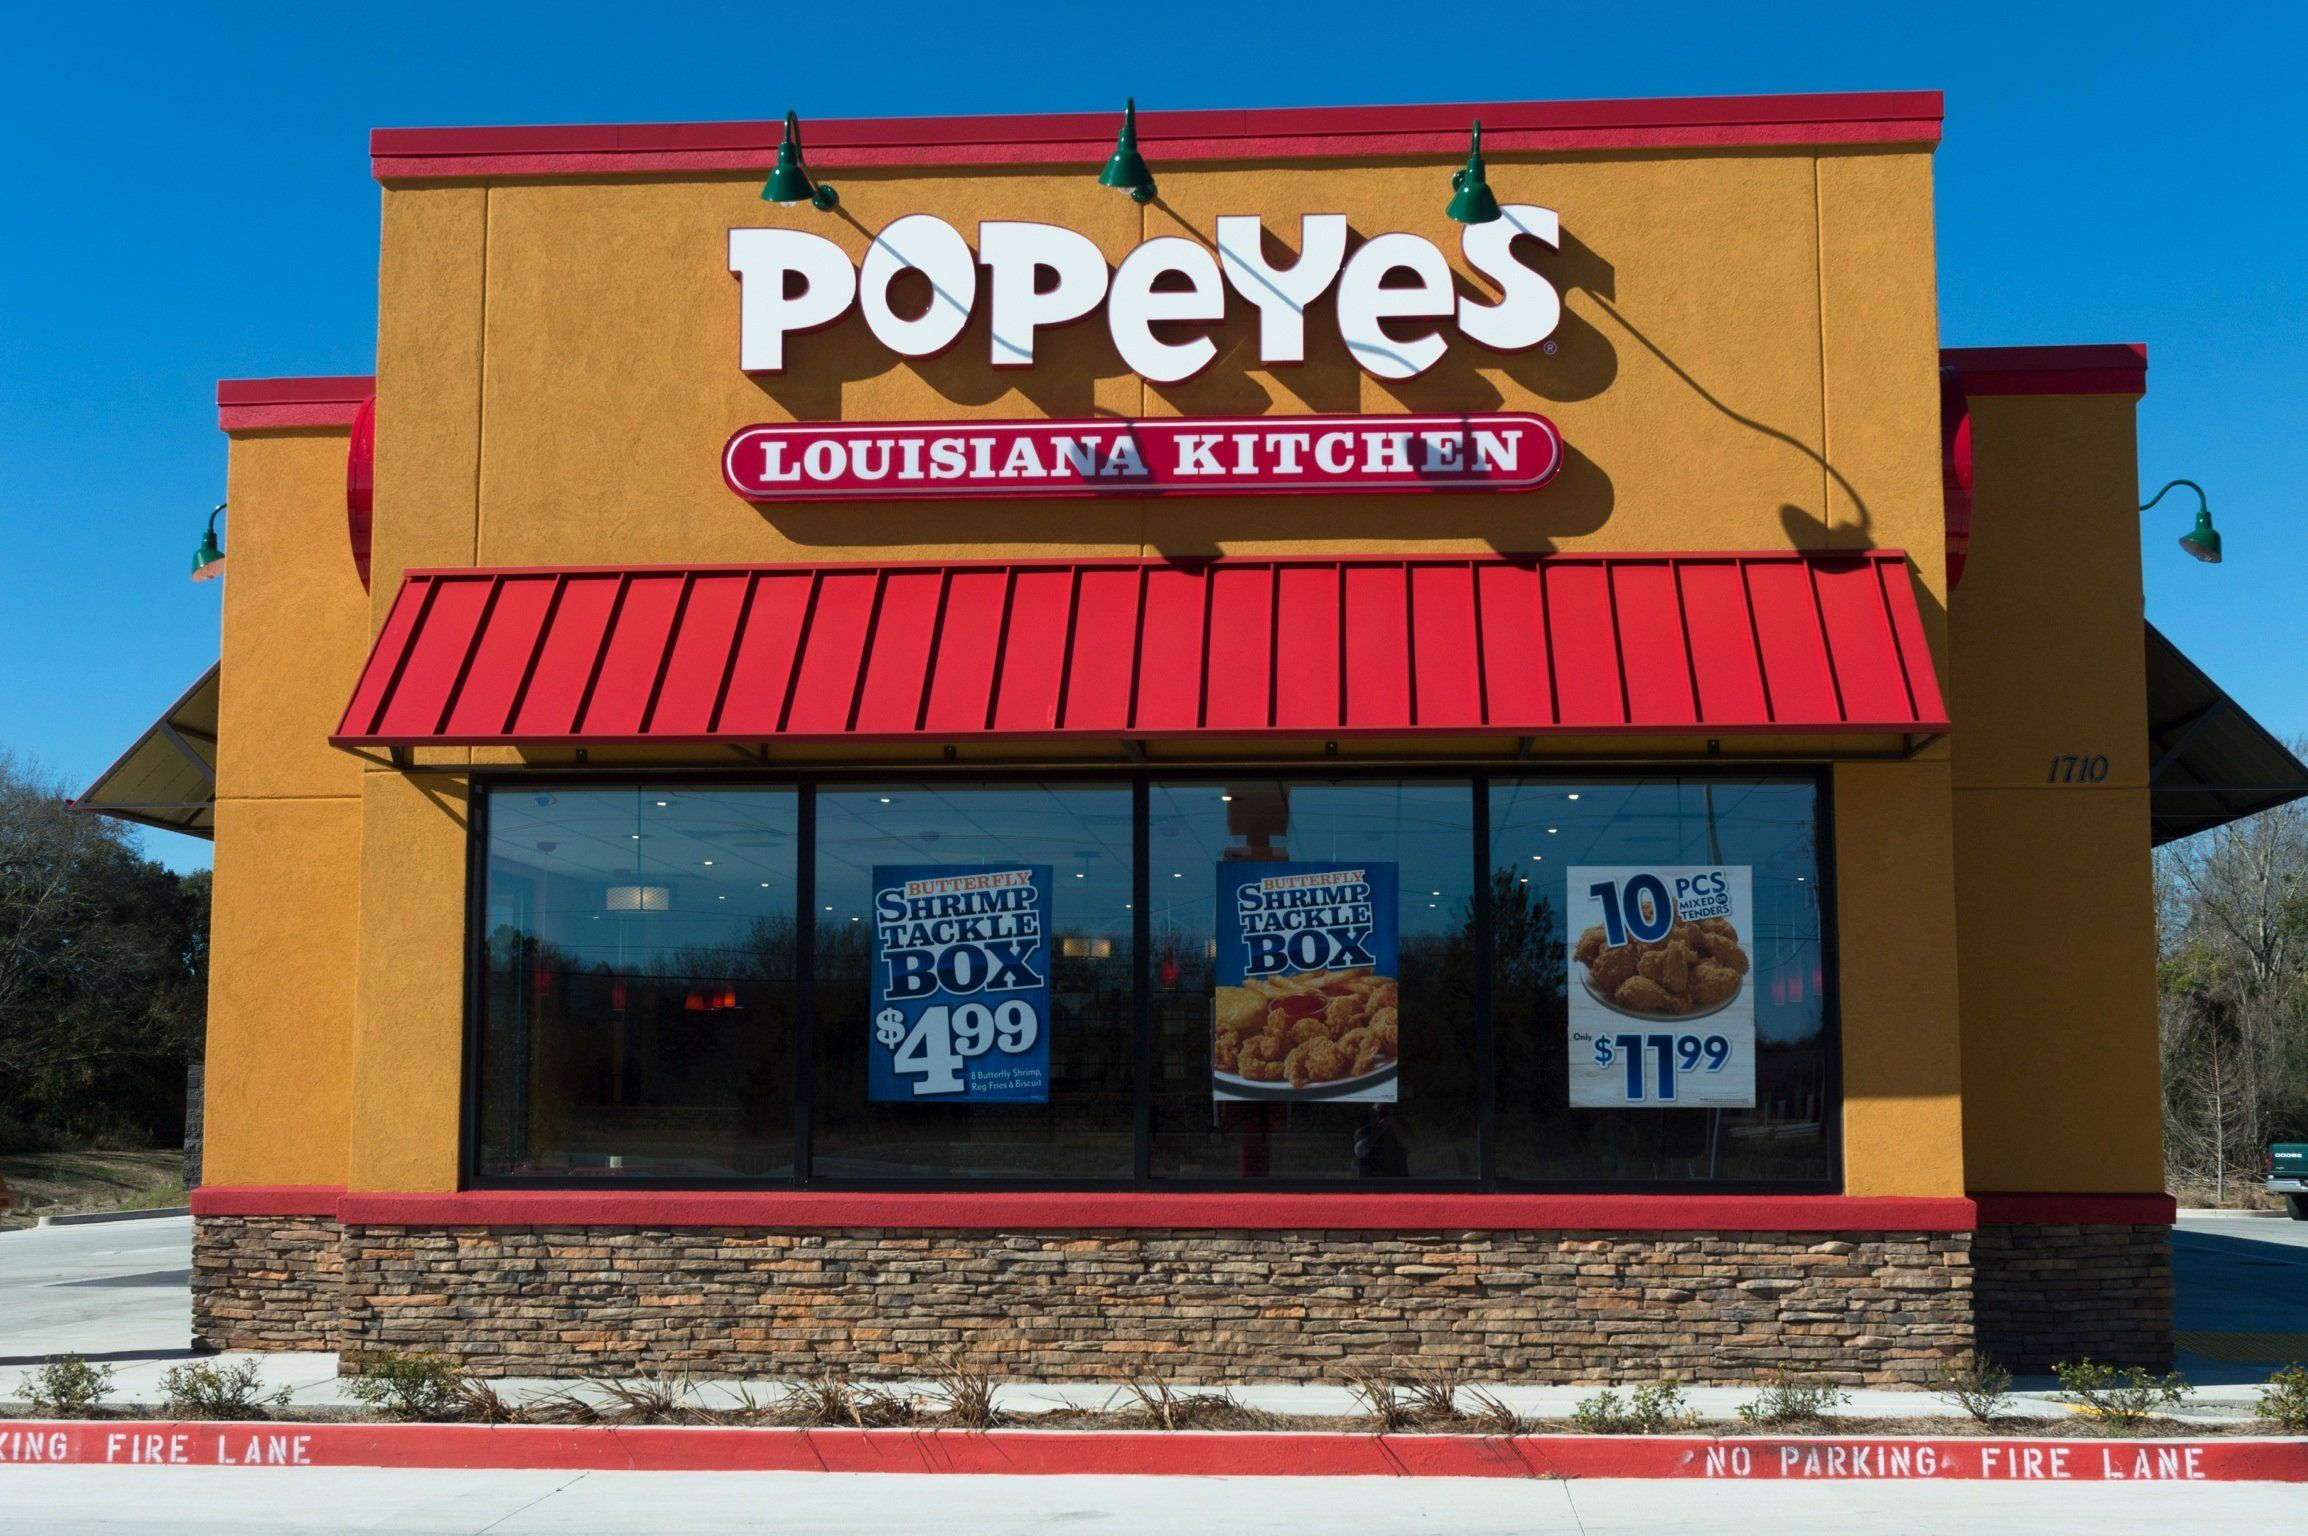 Devin Washington helped stop a thief who tried to steal cash from a Popeyes Famous Fried Chicken restaurant in New Orlea